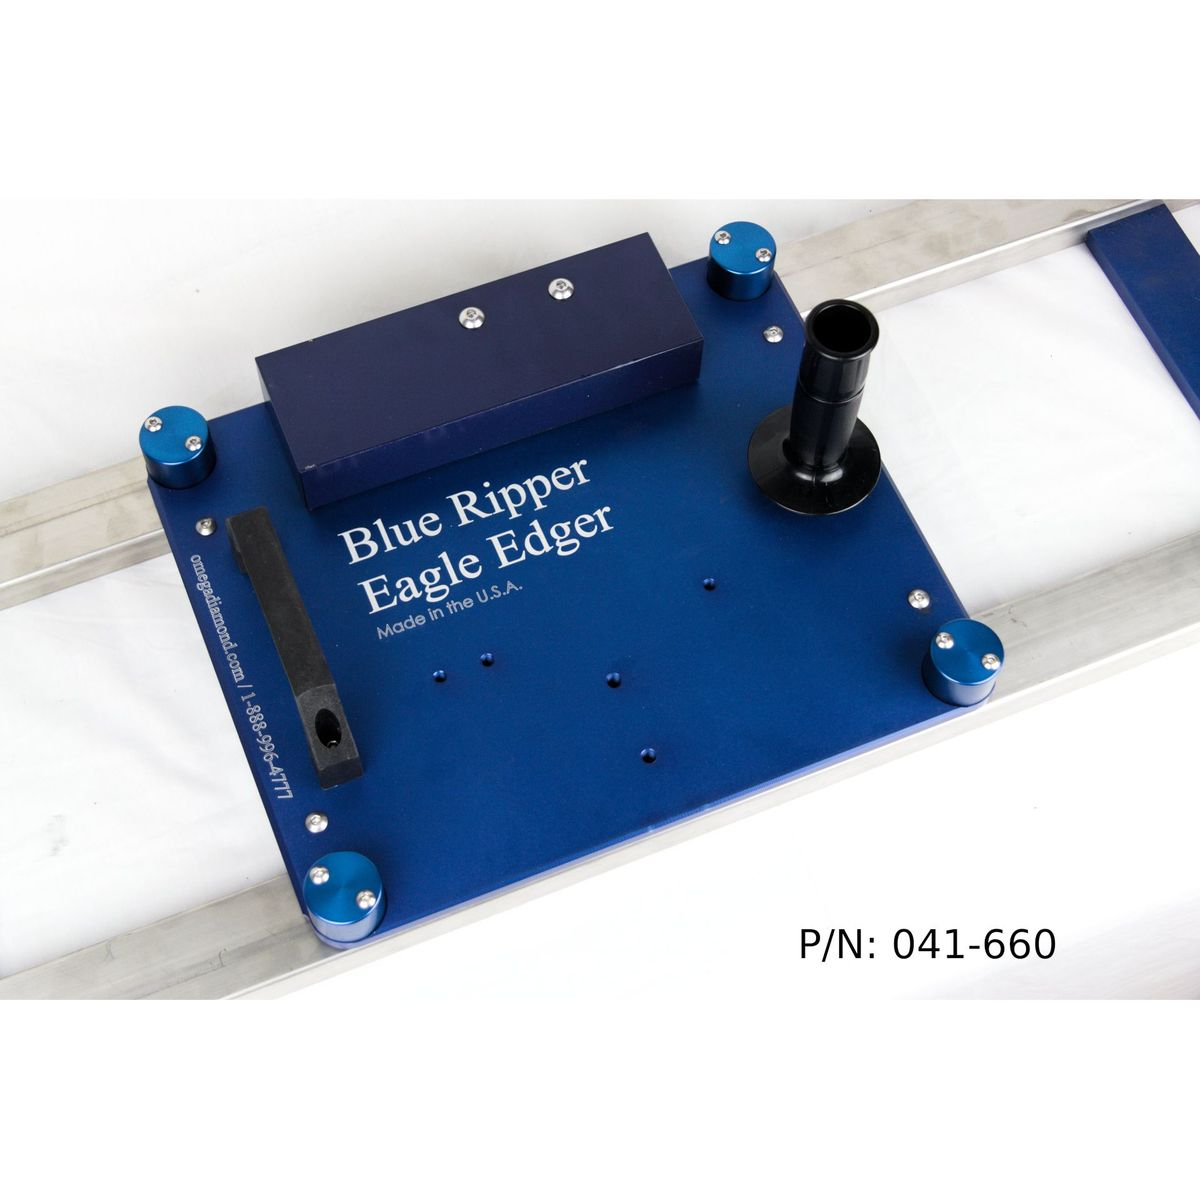 Eagle Edger Baseplate (With bearings, counterweight, and handles)